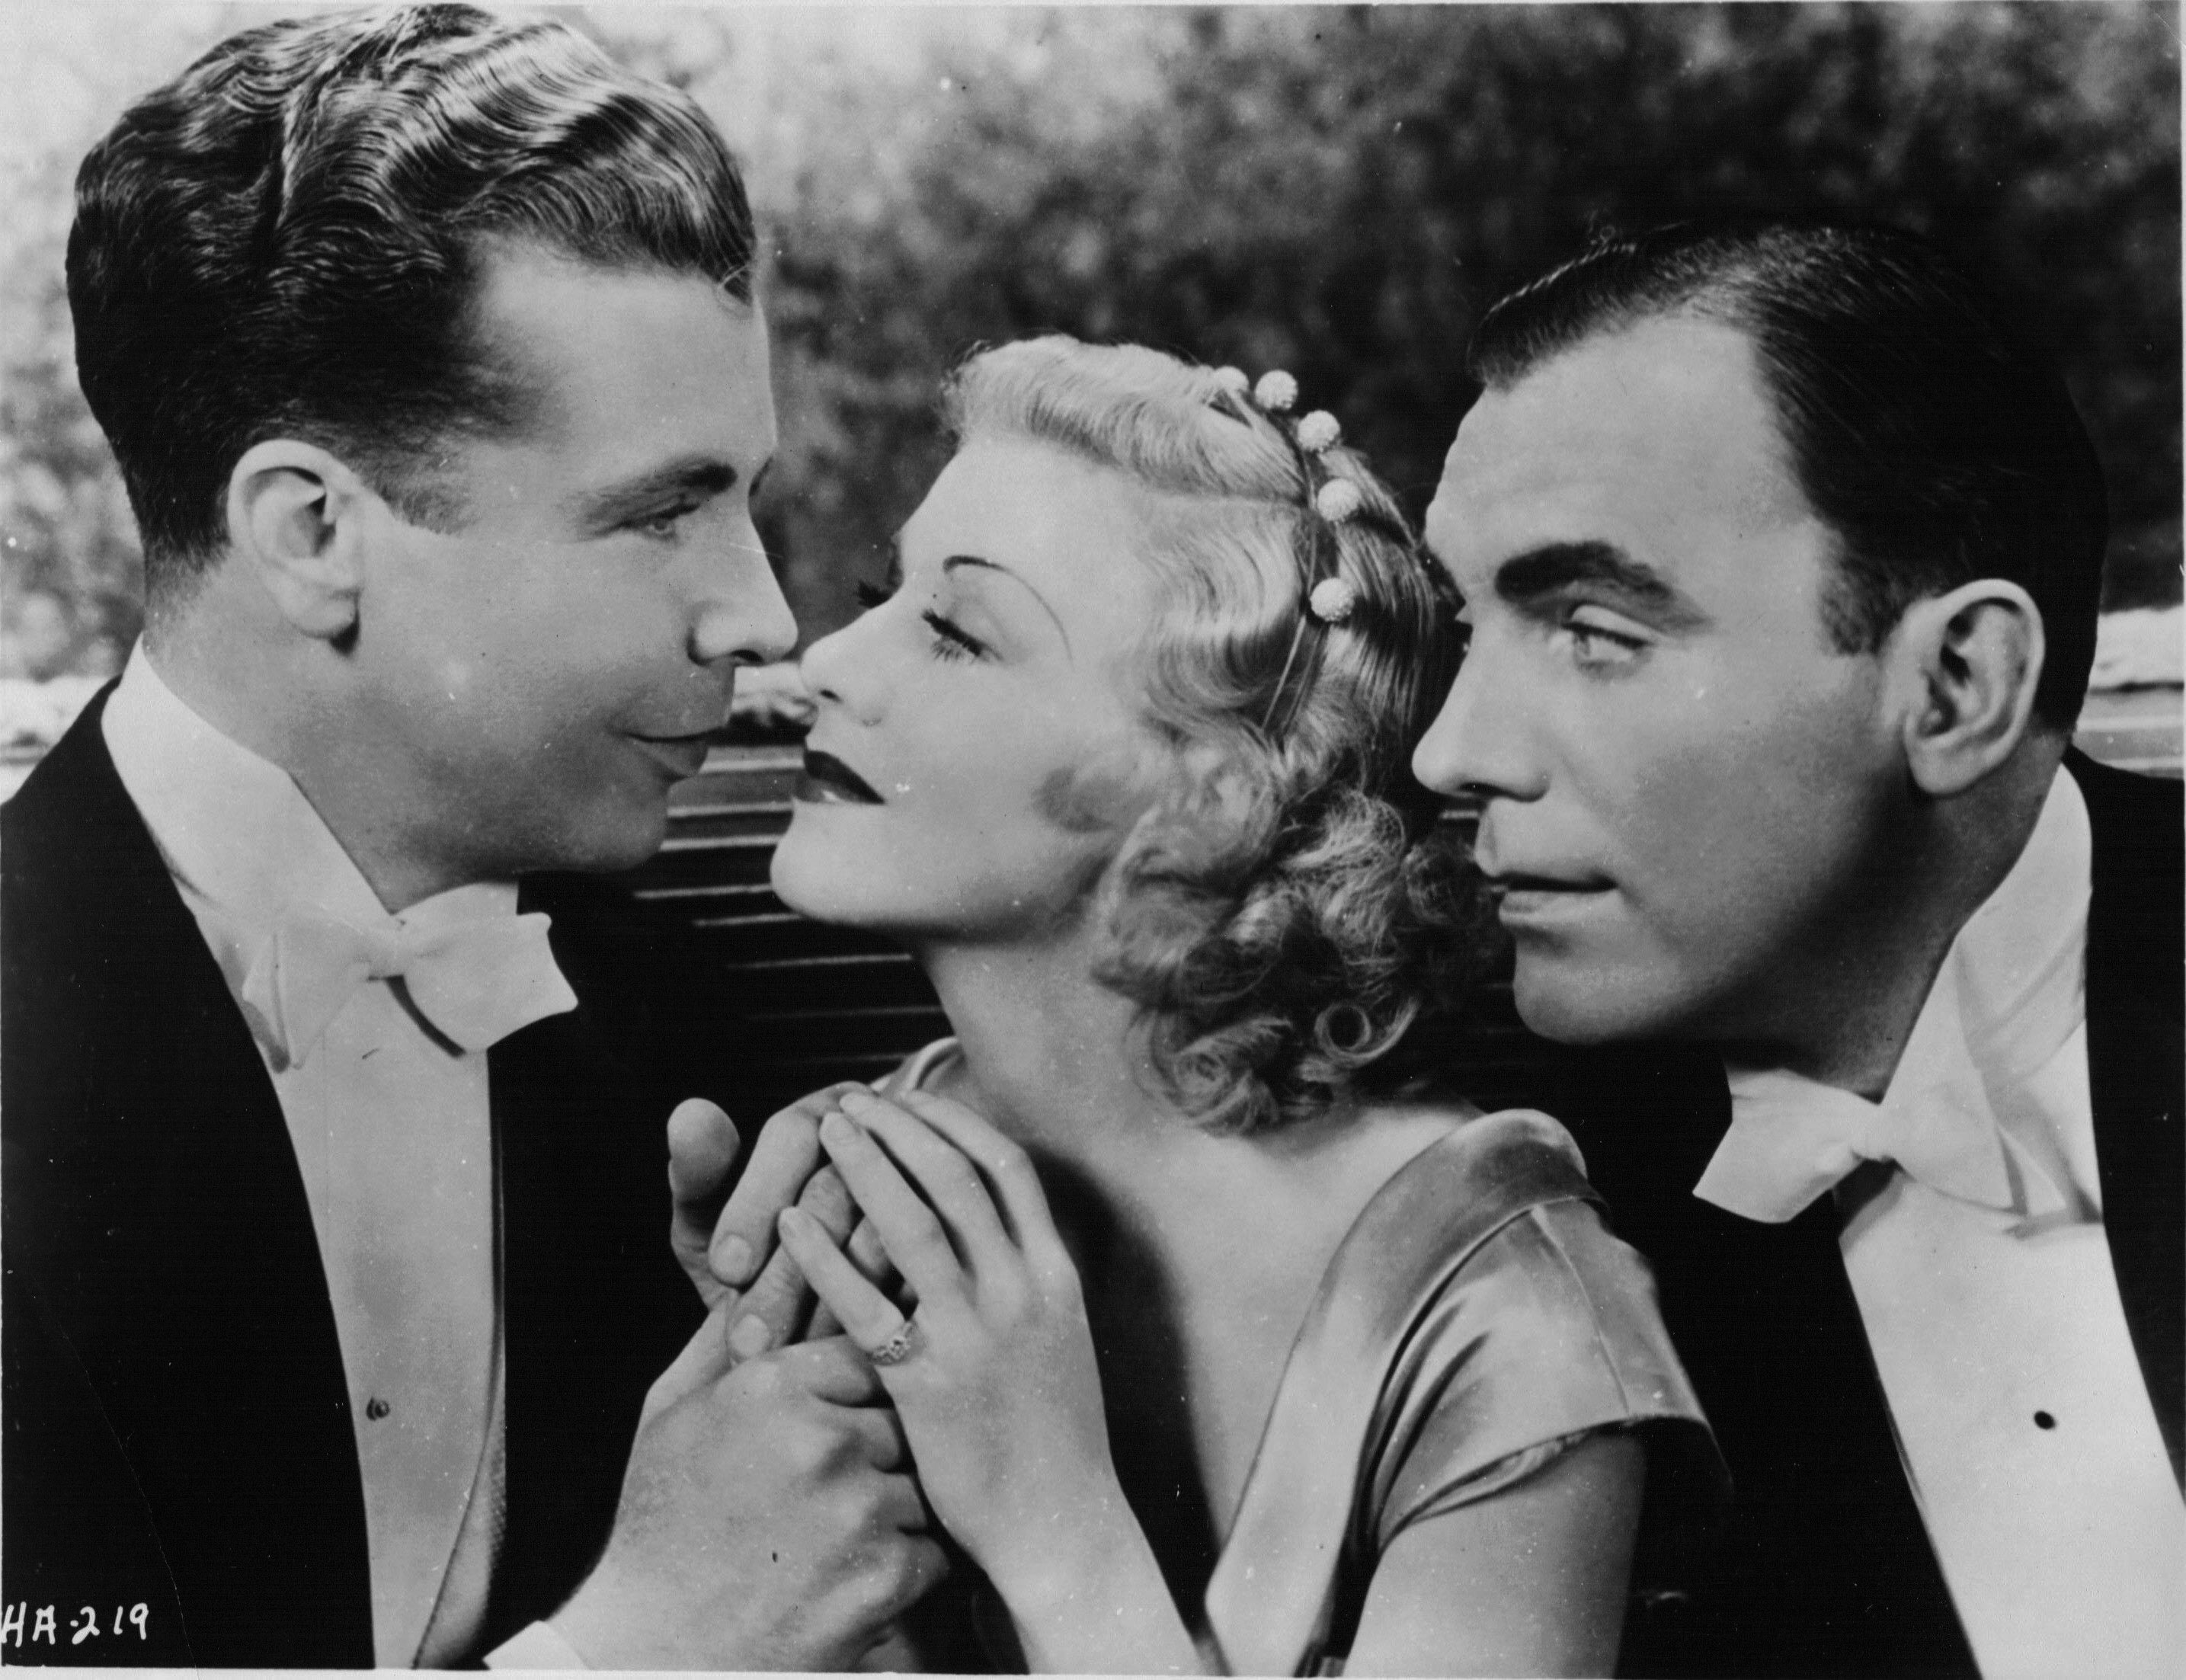 Ginger Rogers, Pat O'Brien, and Dick Powell in Twenty Million Sweethearts (1934)